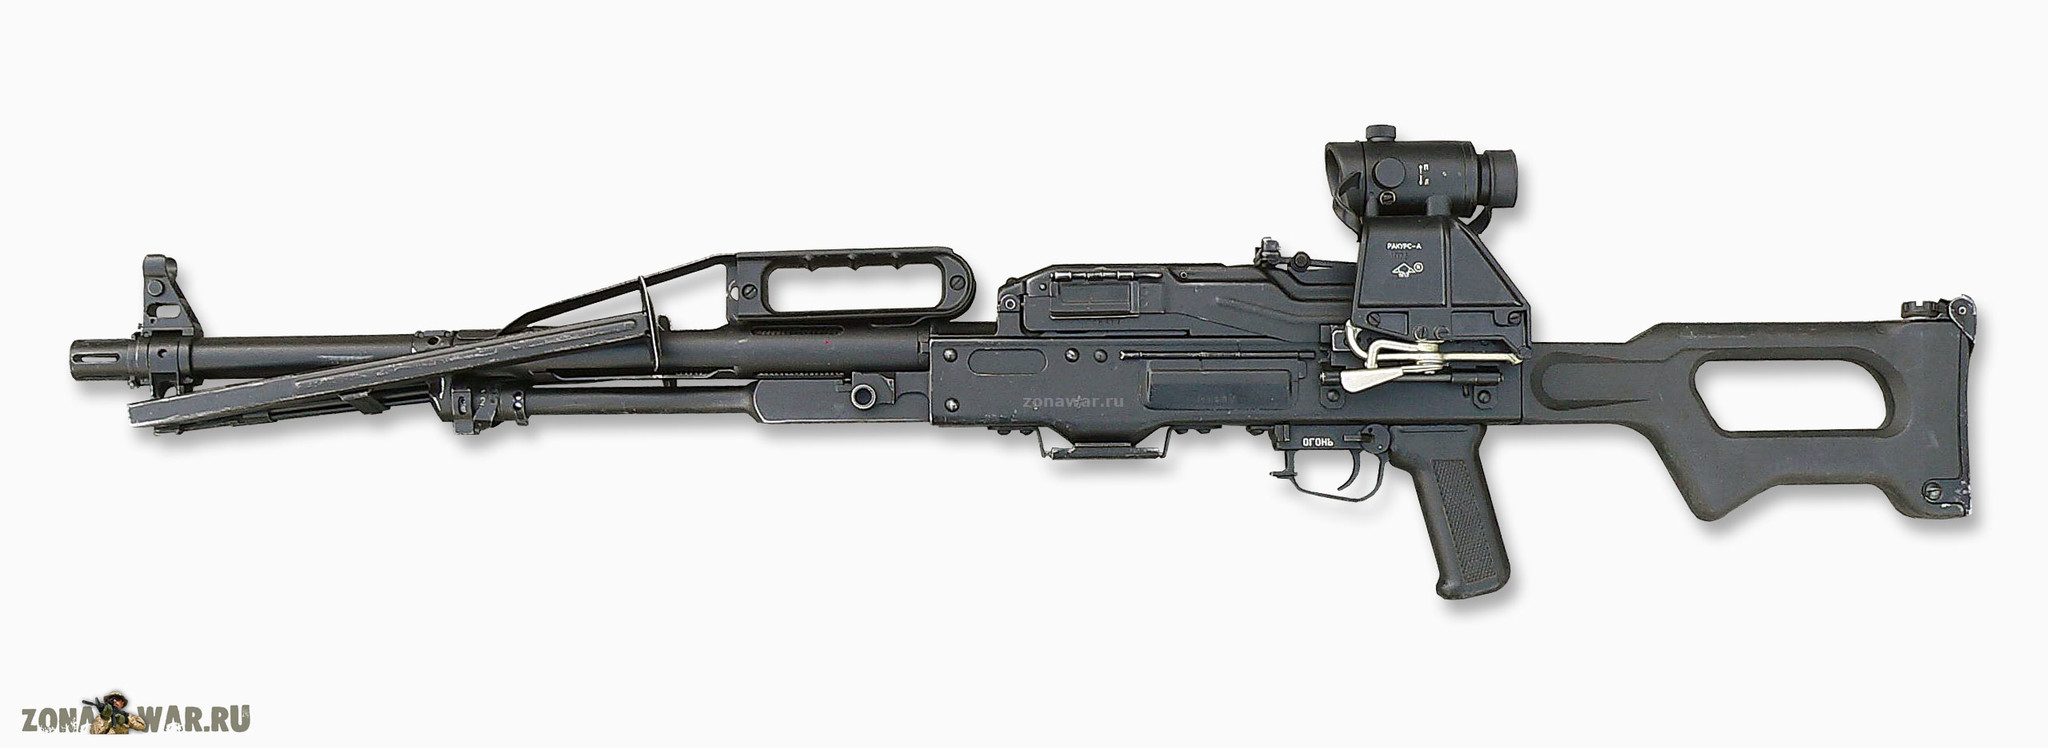 Kalashnikov machine gun: specifications and photos. Russian firearms 4